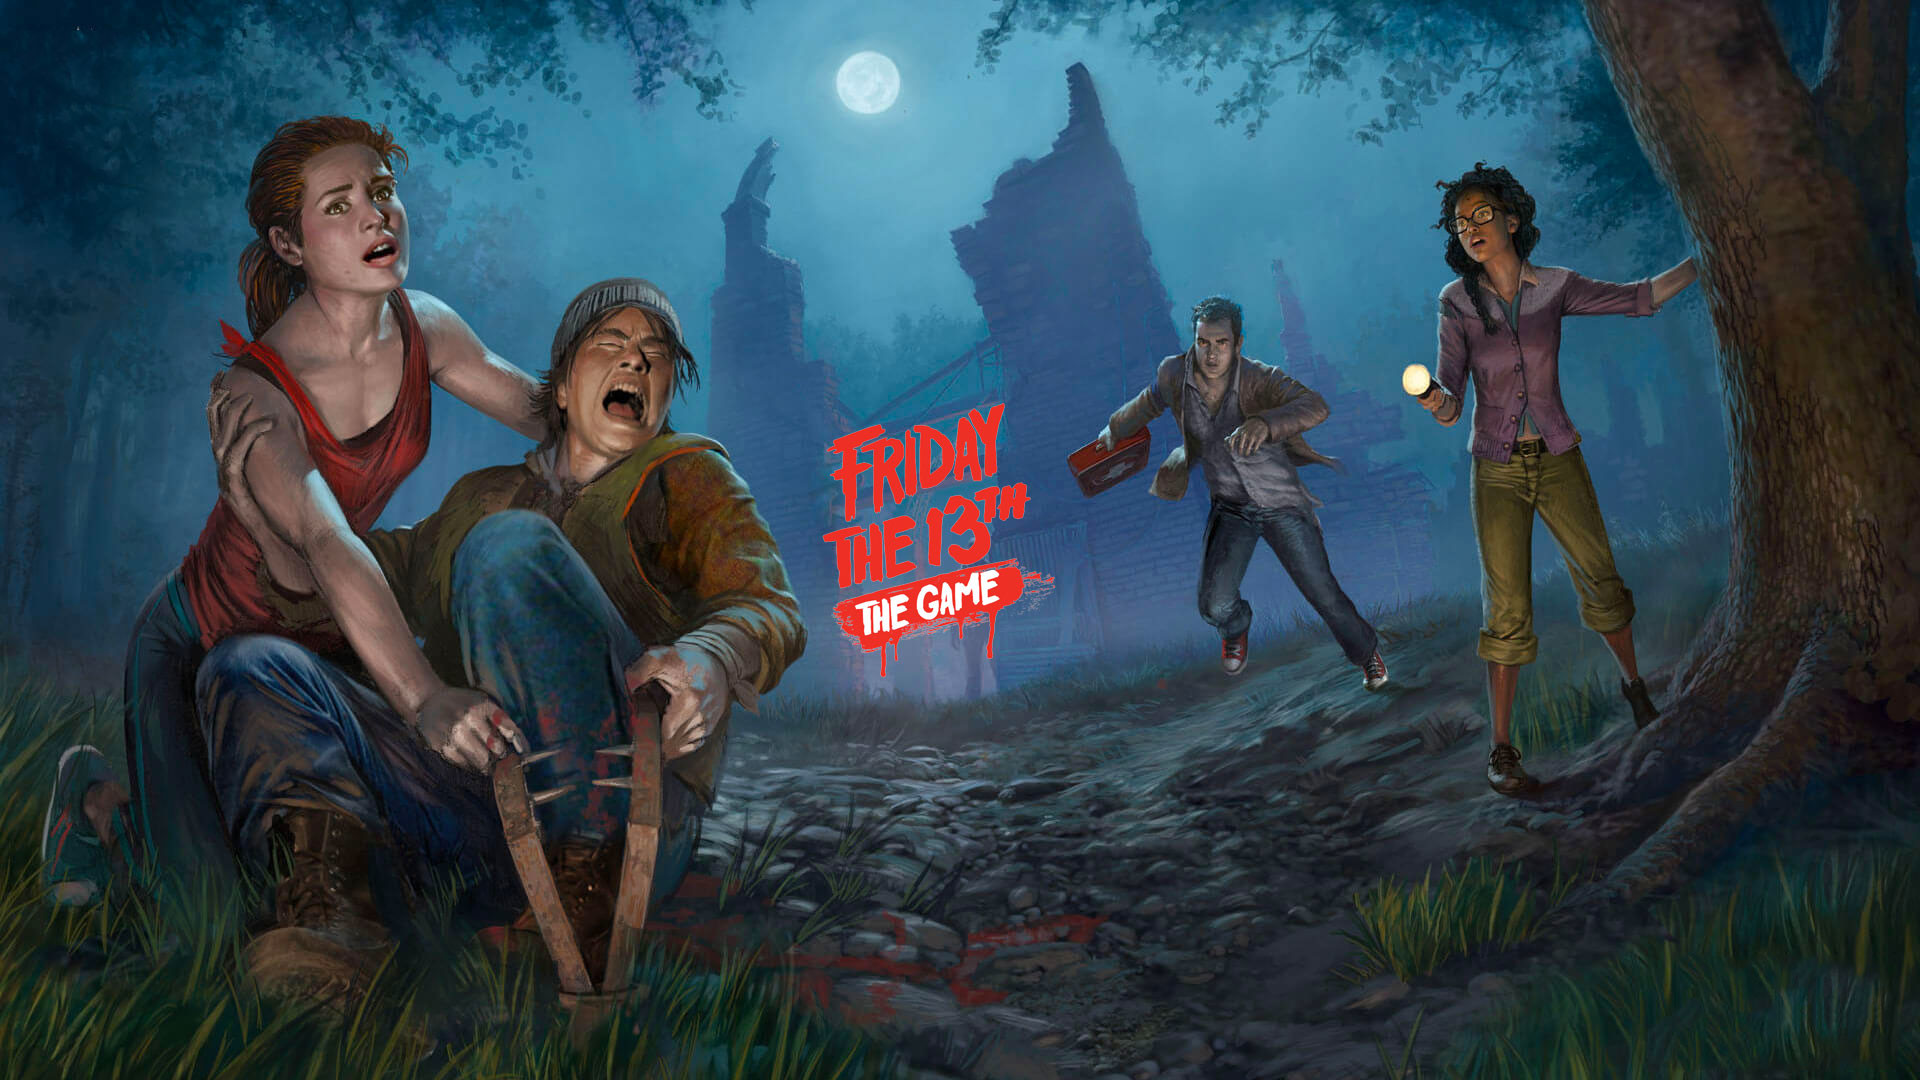 1920x1080 Friday the 13th: The Game HD Wallpaper 7 - 1920 X 1080